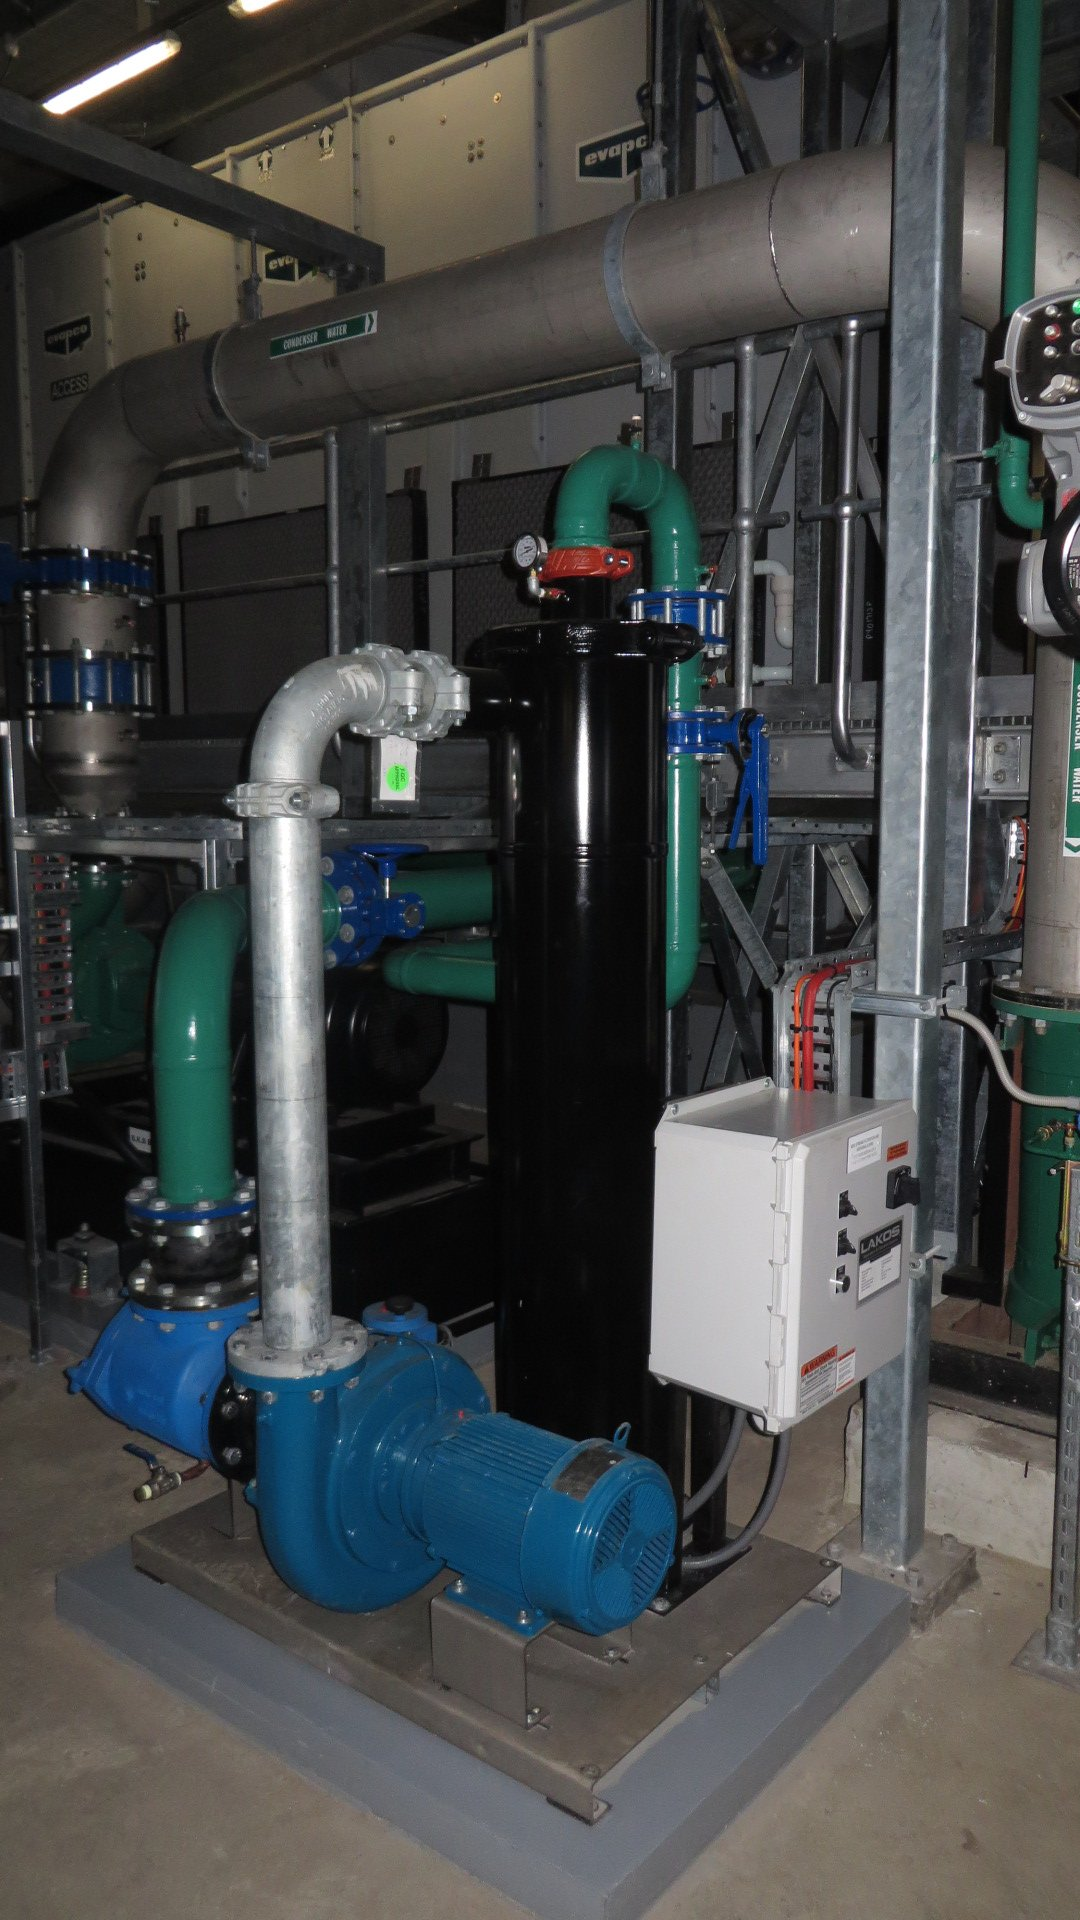 Telstra Data Centre Cooling Tower Filtration